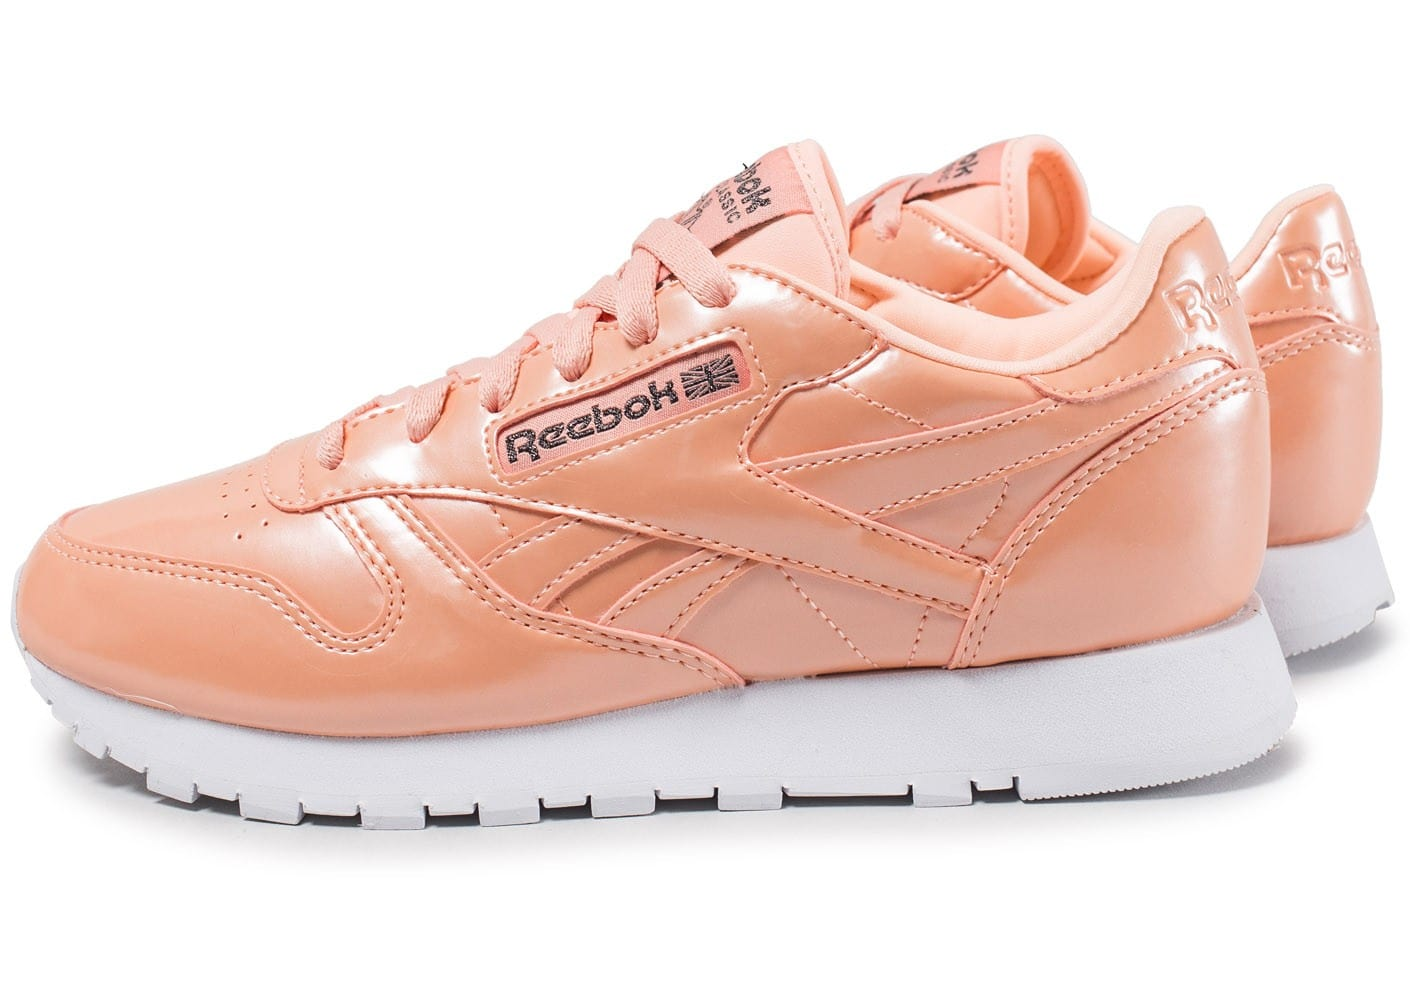 435e99876ce Friday Chaussures Pp Chausport Classic Leather Reebok Black Orange  xnqIwzZPBY